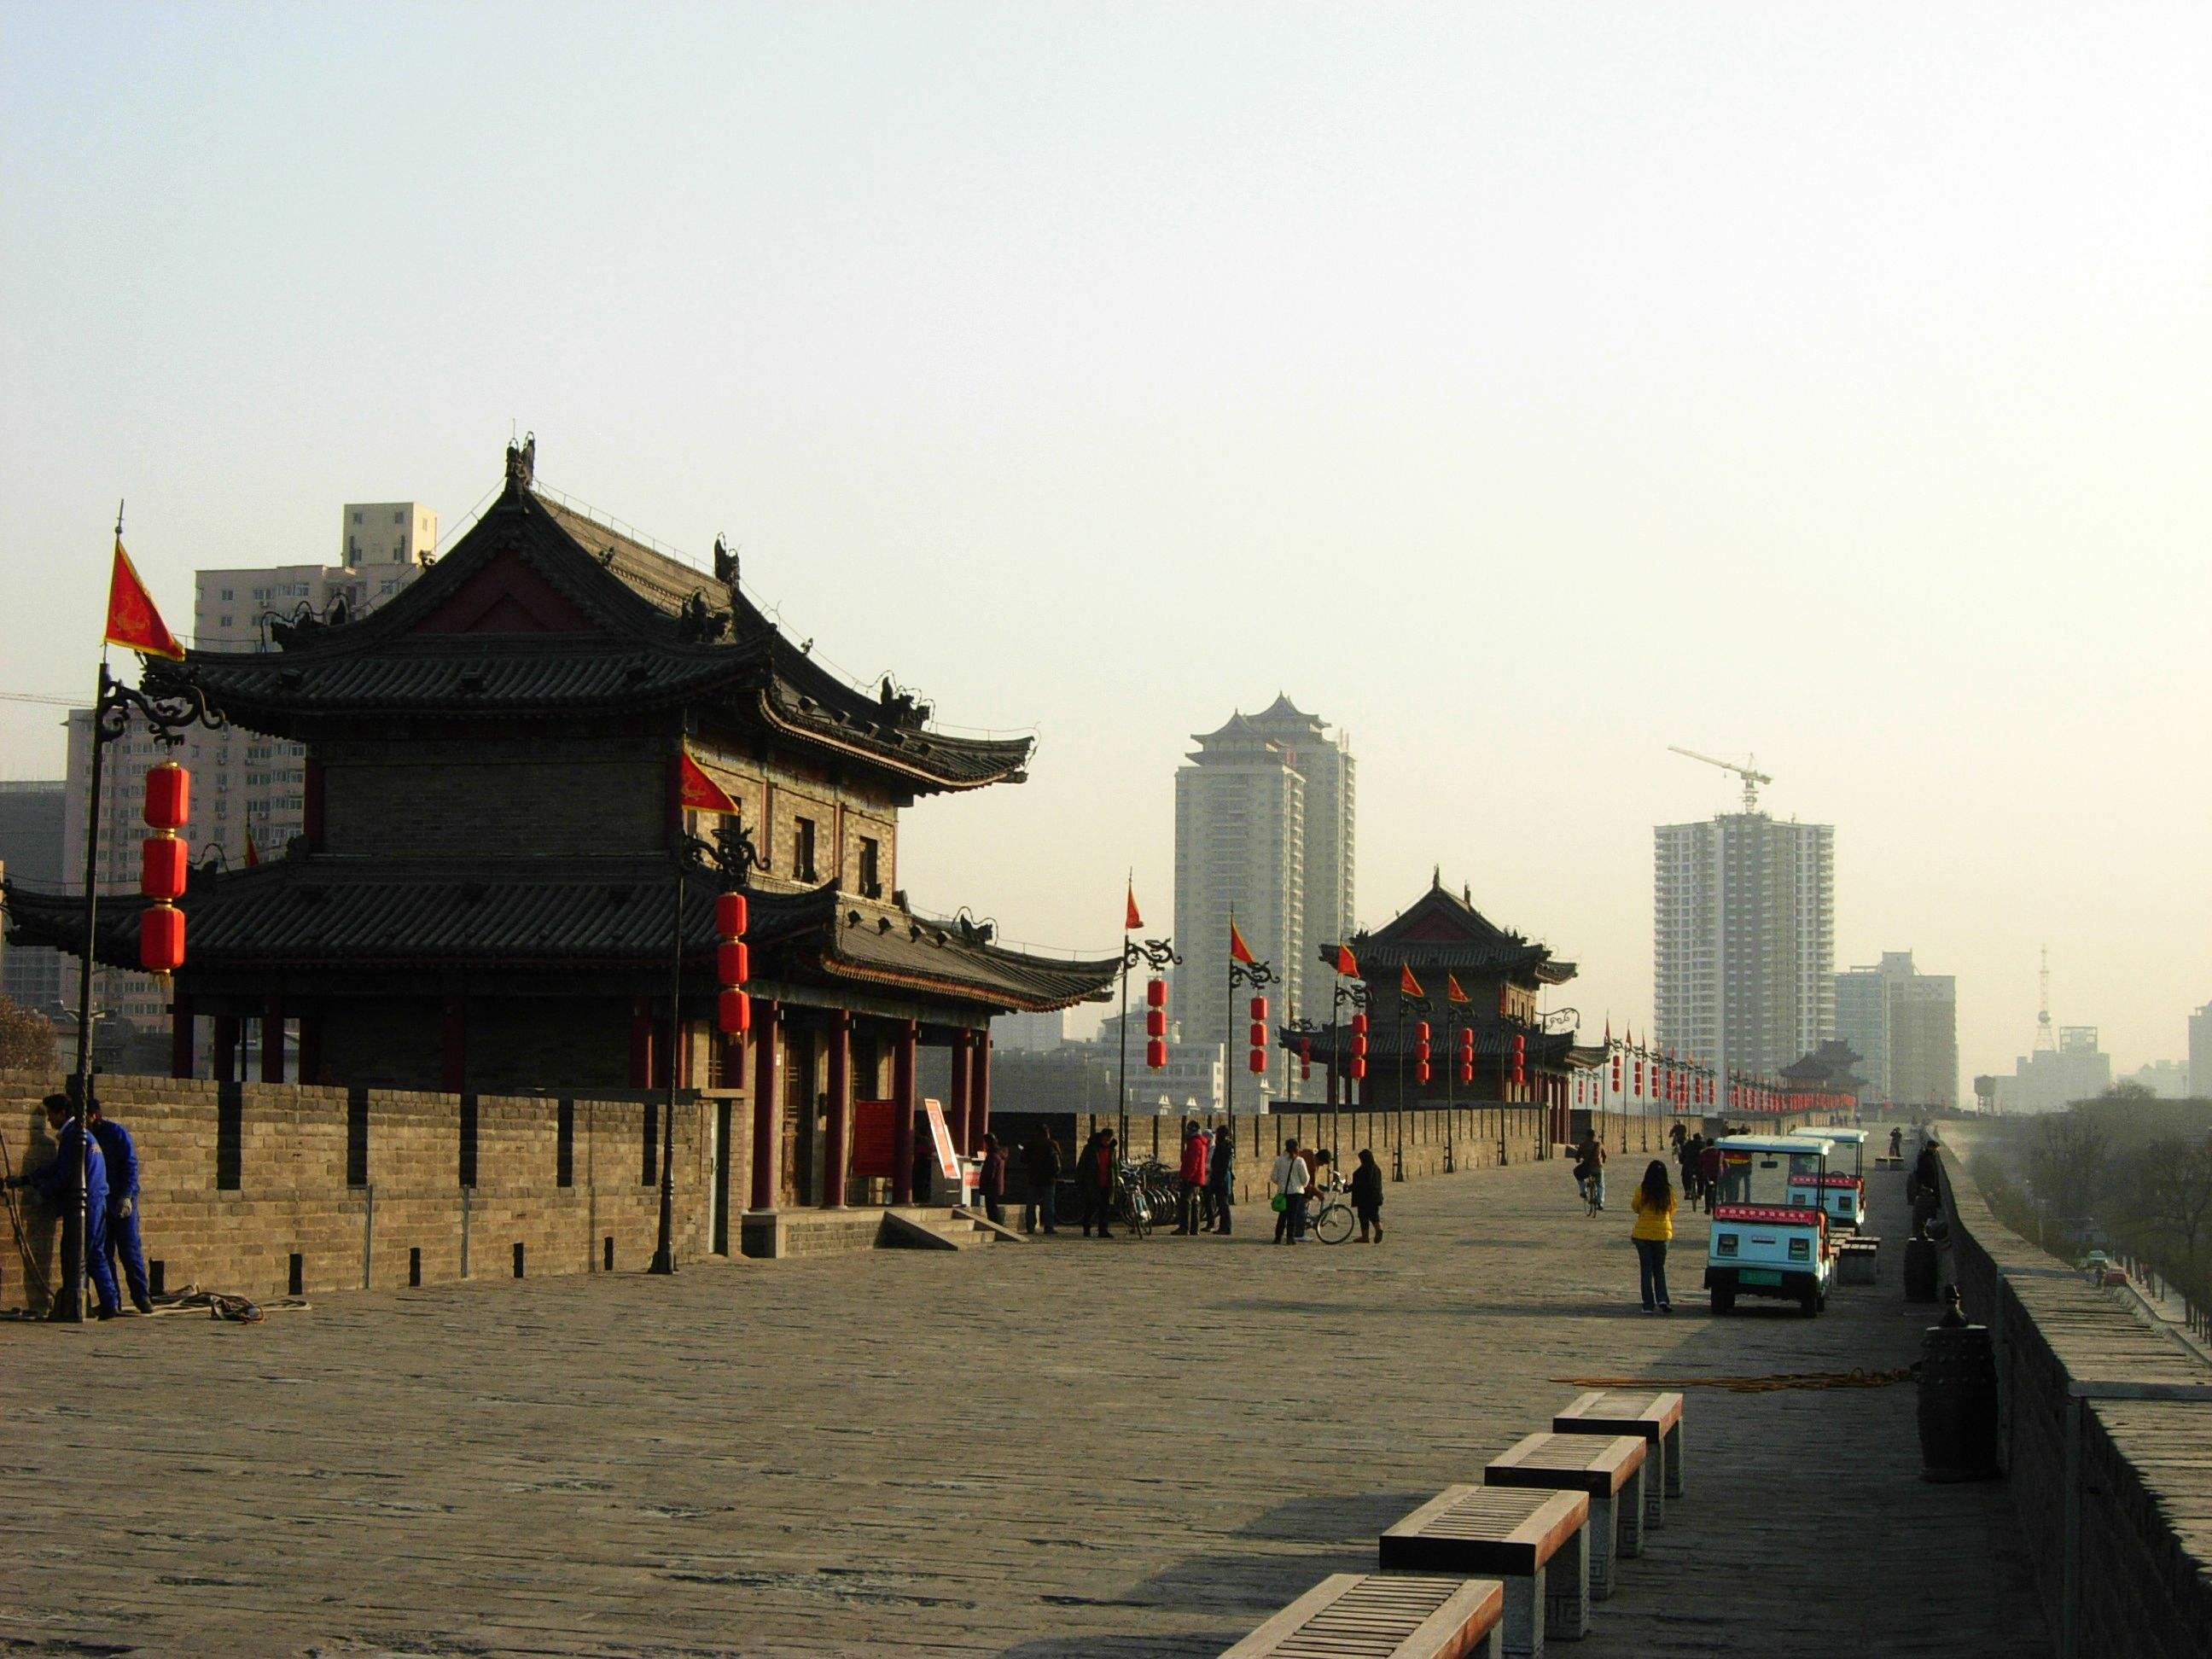 Ancient_Beijing_Xian_Exploration_Tour_26.jpg